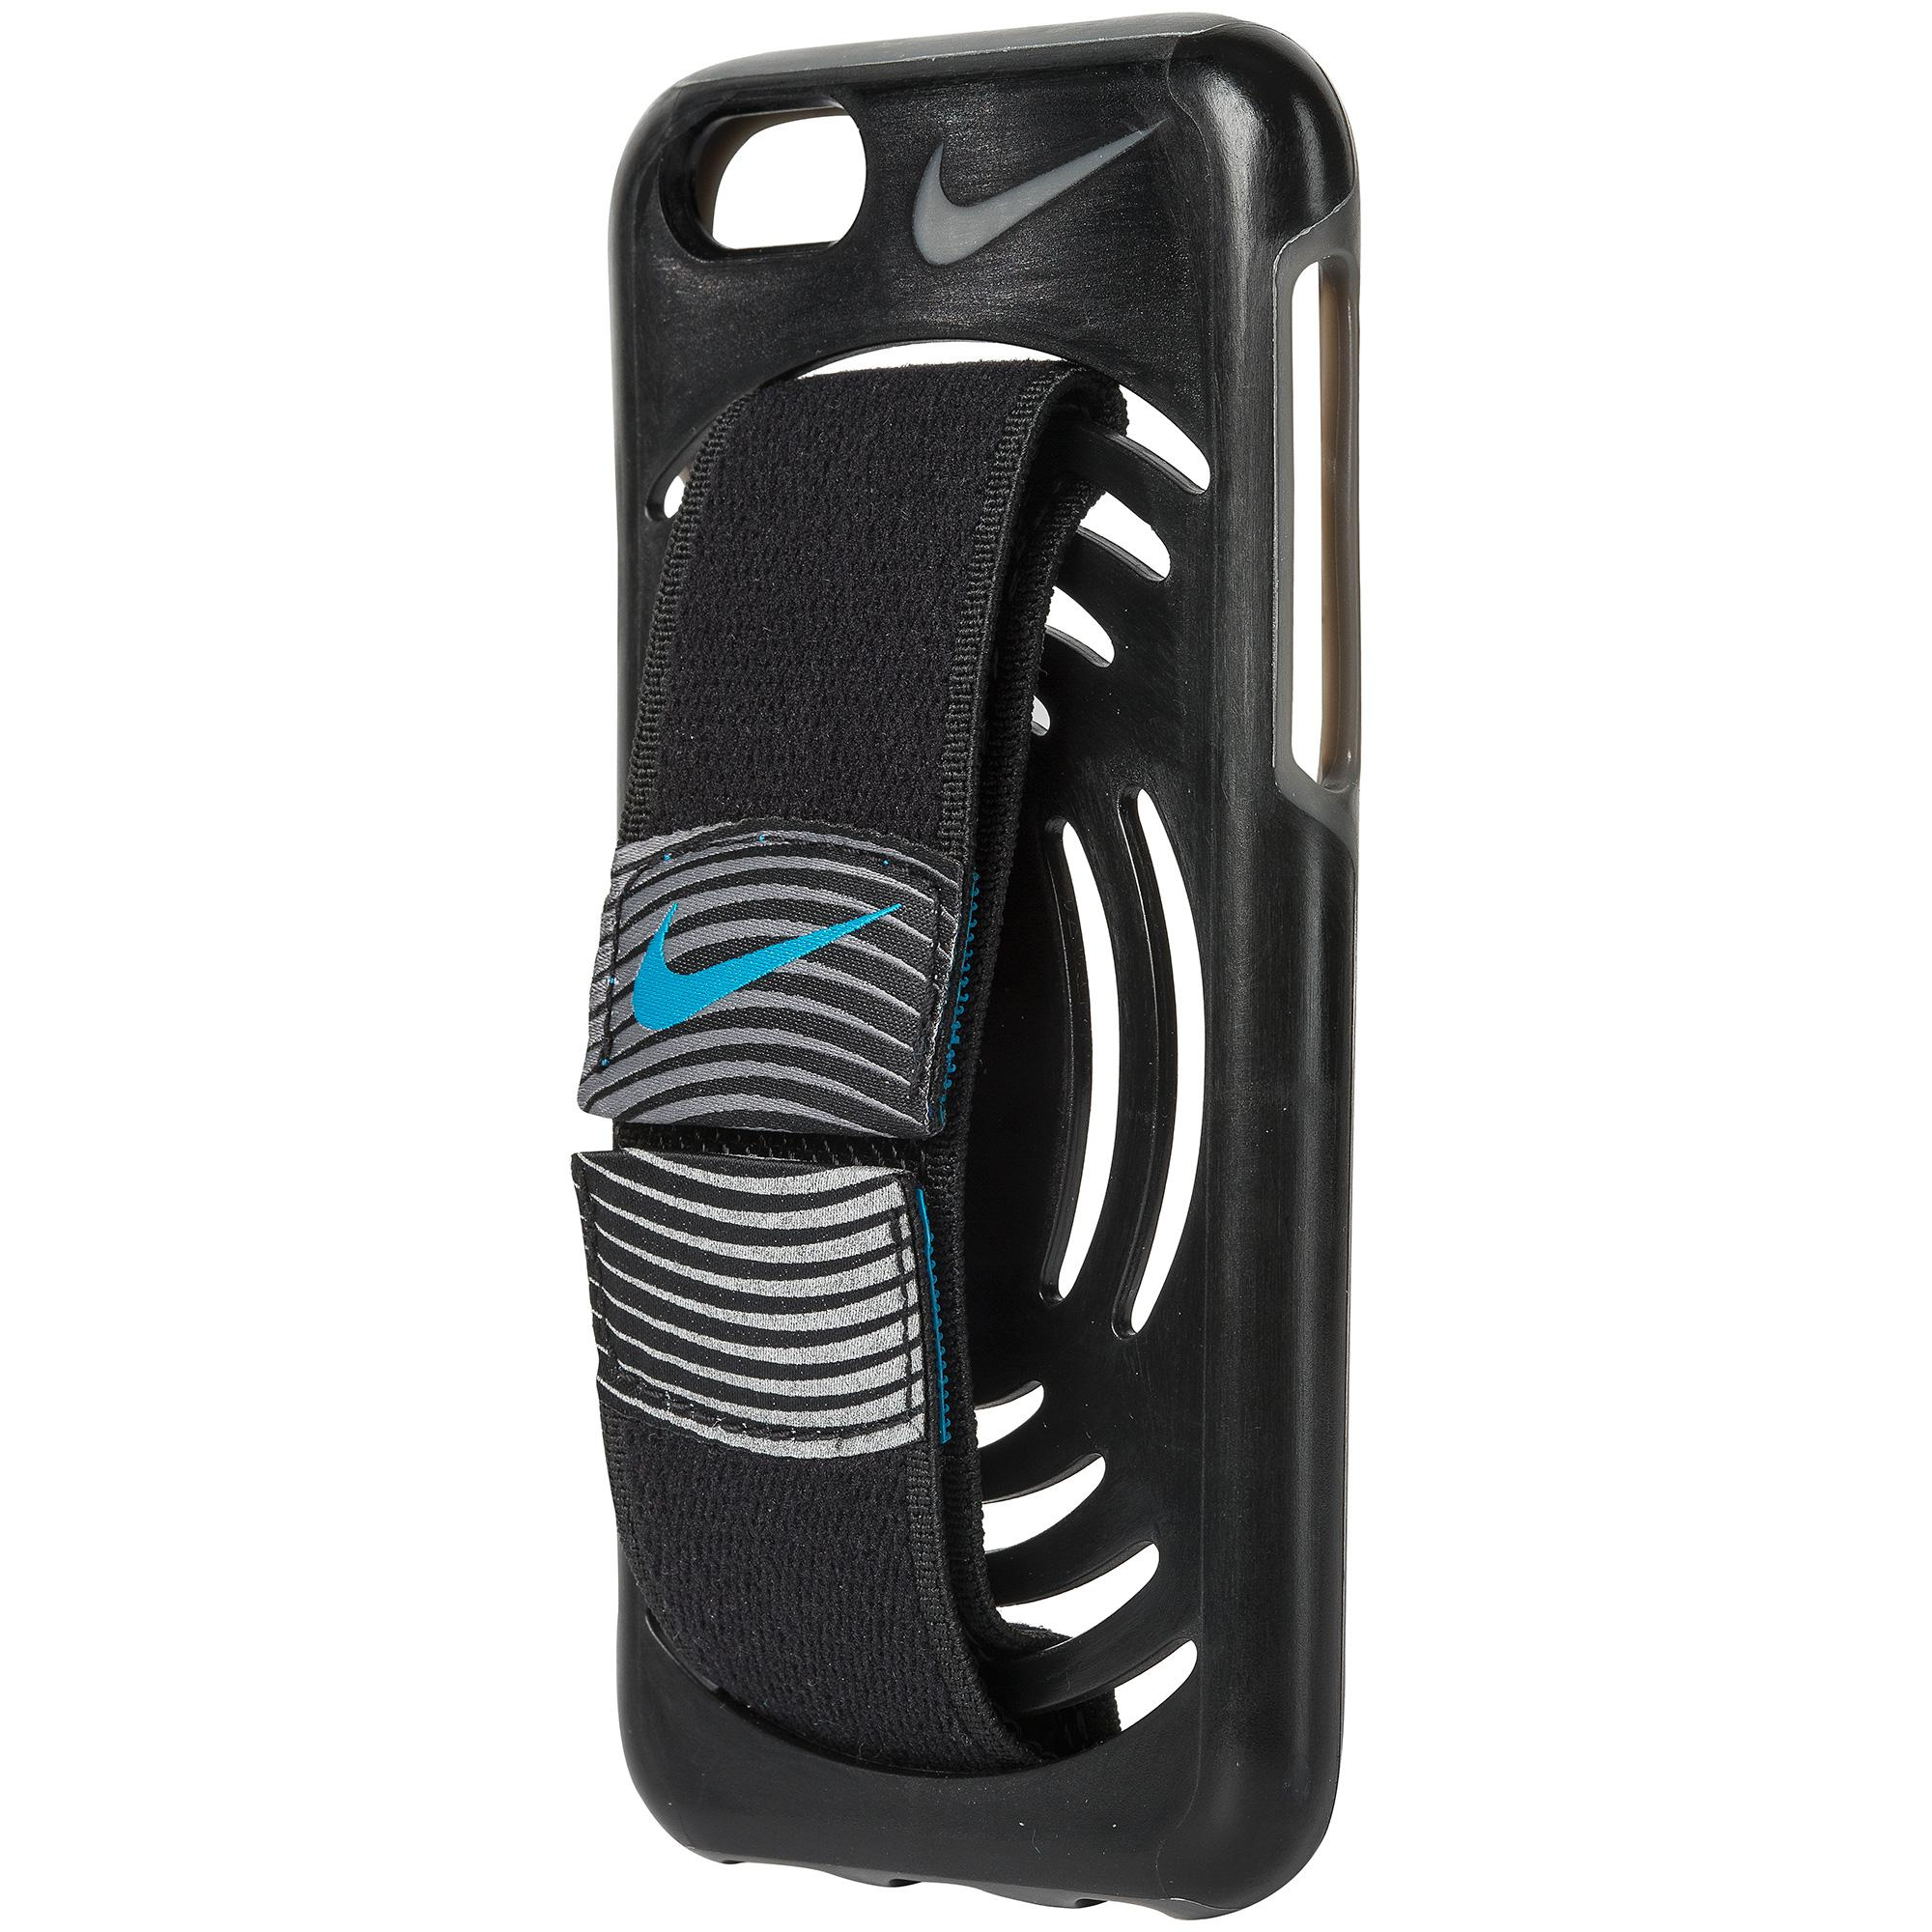 nike iphone case nike revolution handheld phone for iphone 6 black 12715